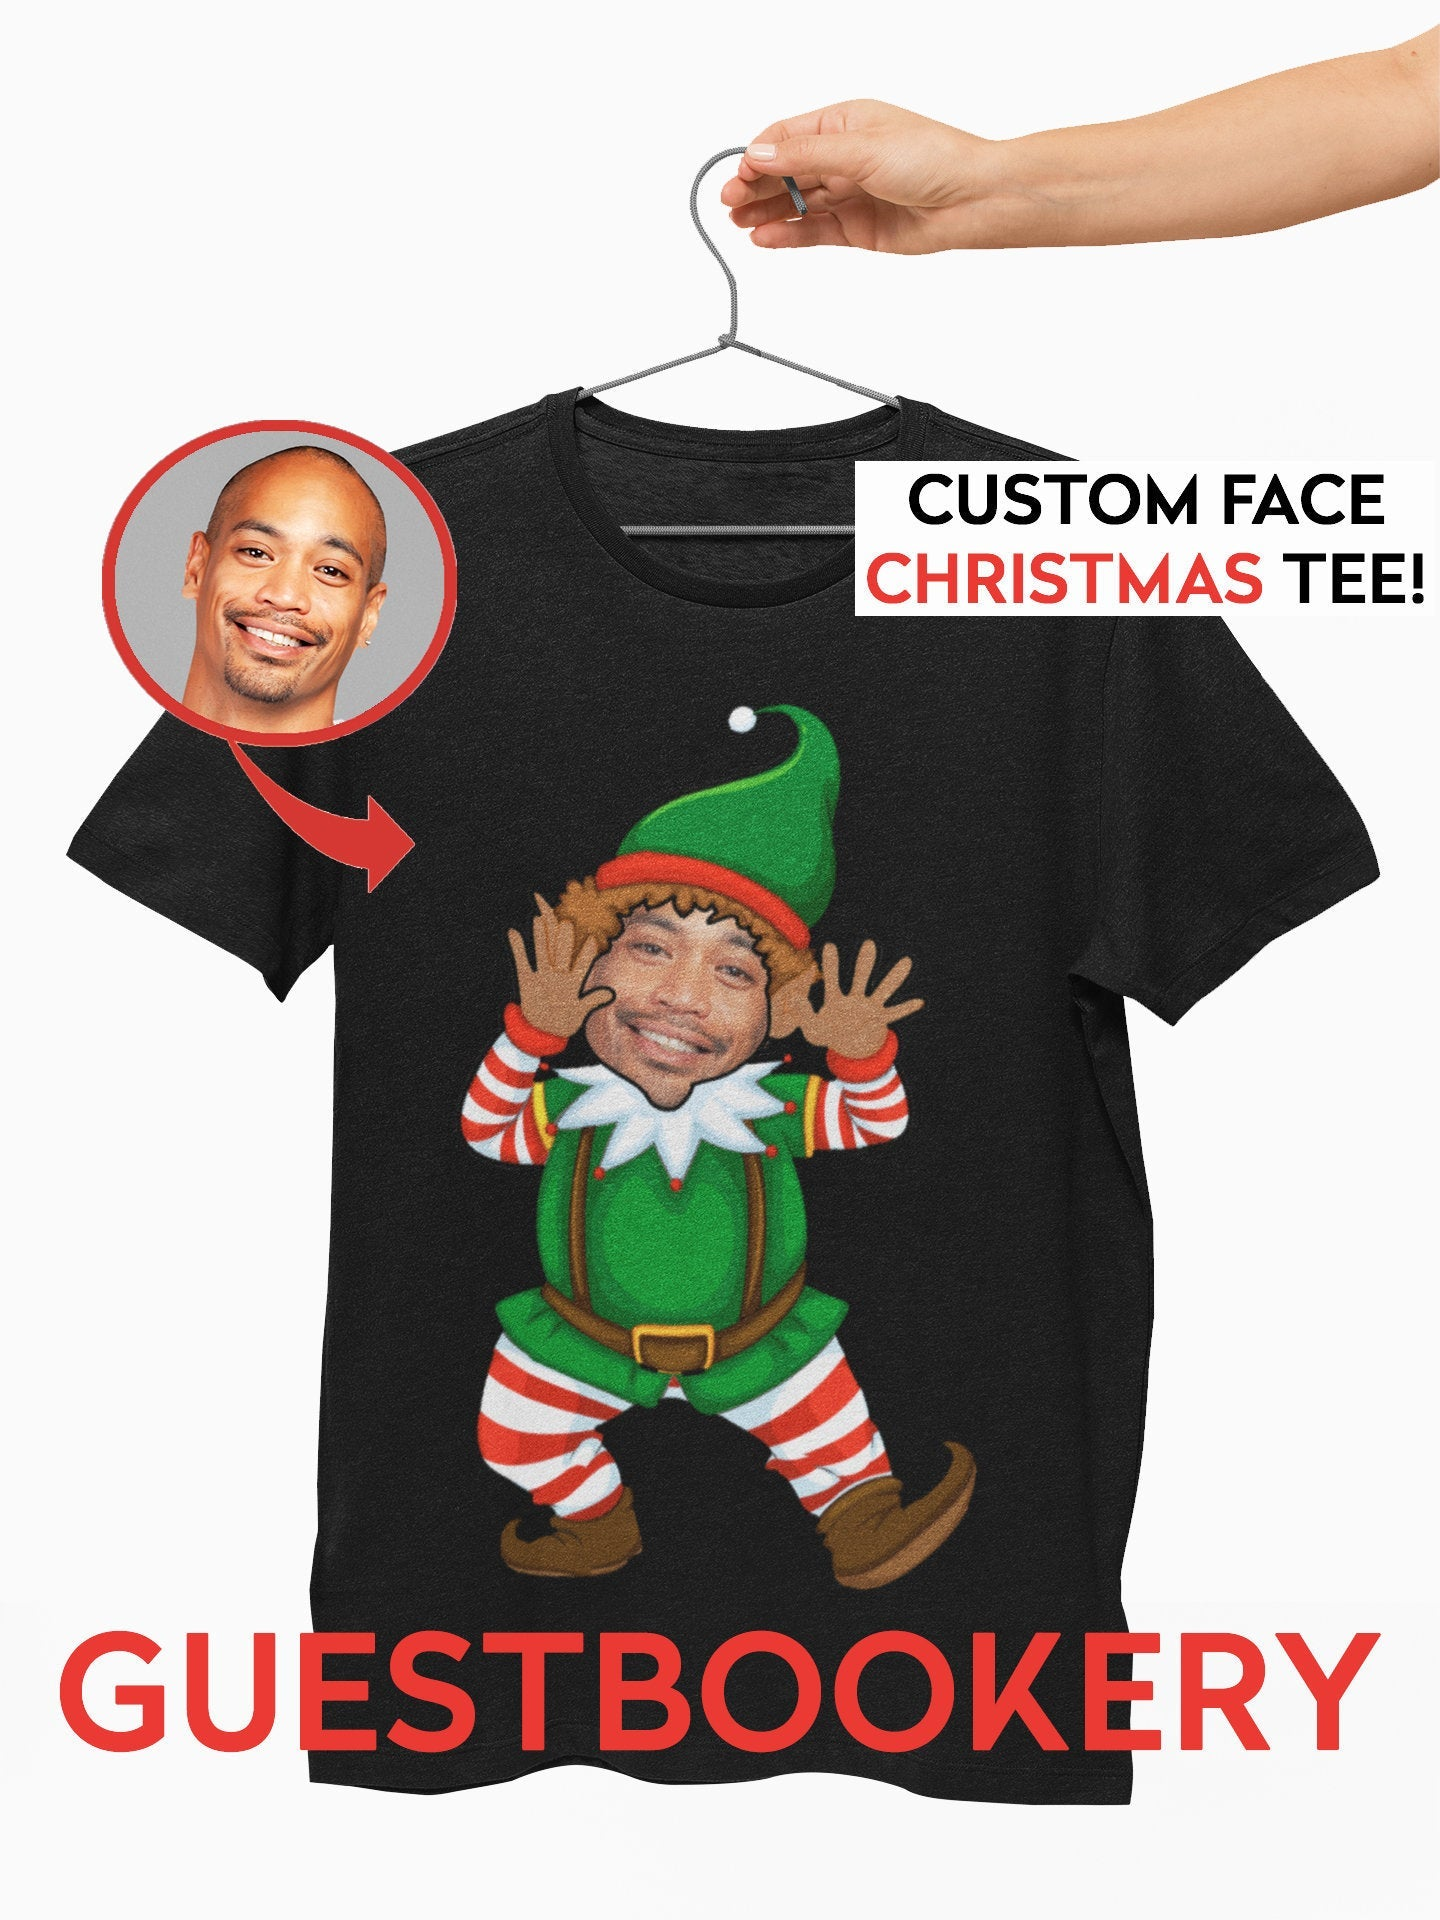 Custom Faces Ugly Christmas T-shirt - Elf - Guestbookery